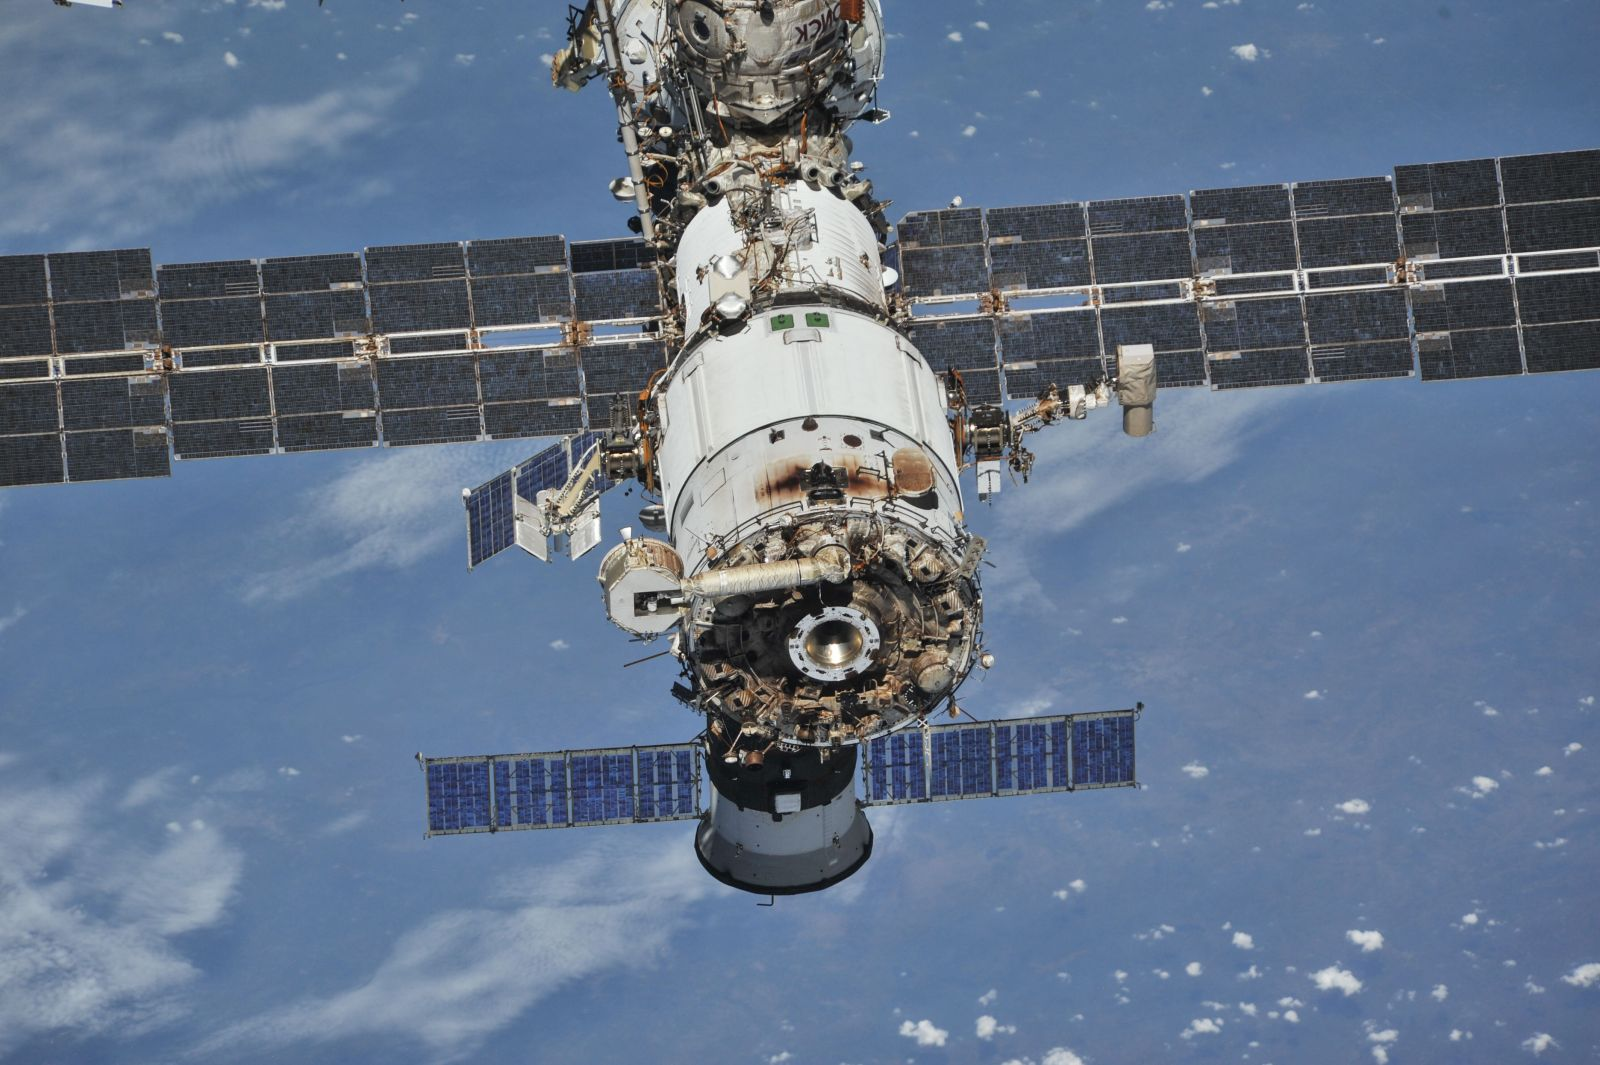 The rear section of the 20-year-old Zvezda service module is the location of a slight air leak aboard the International Space Station. Credit: Roscosmos